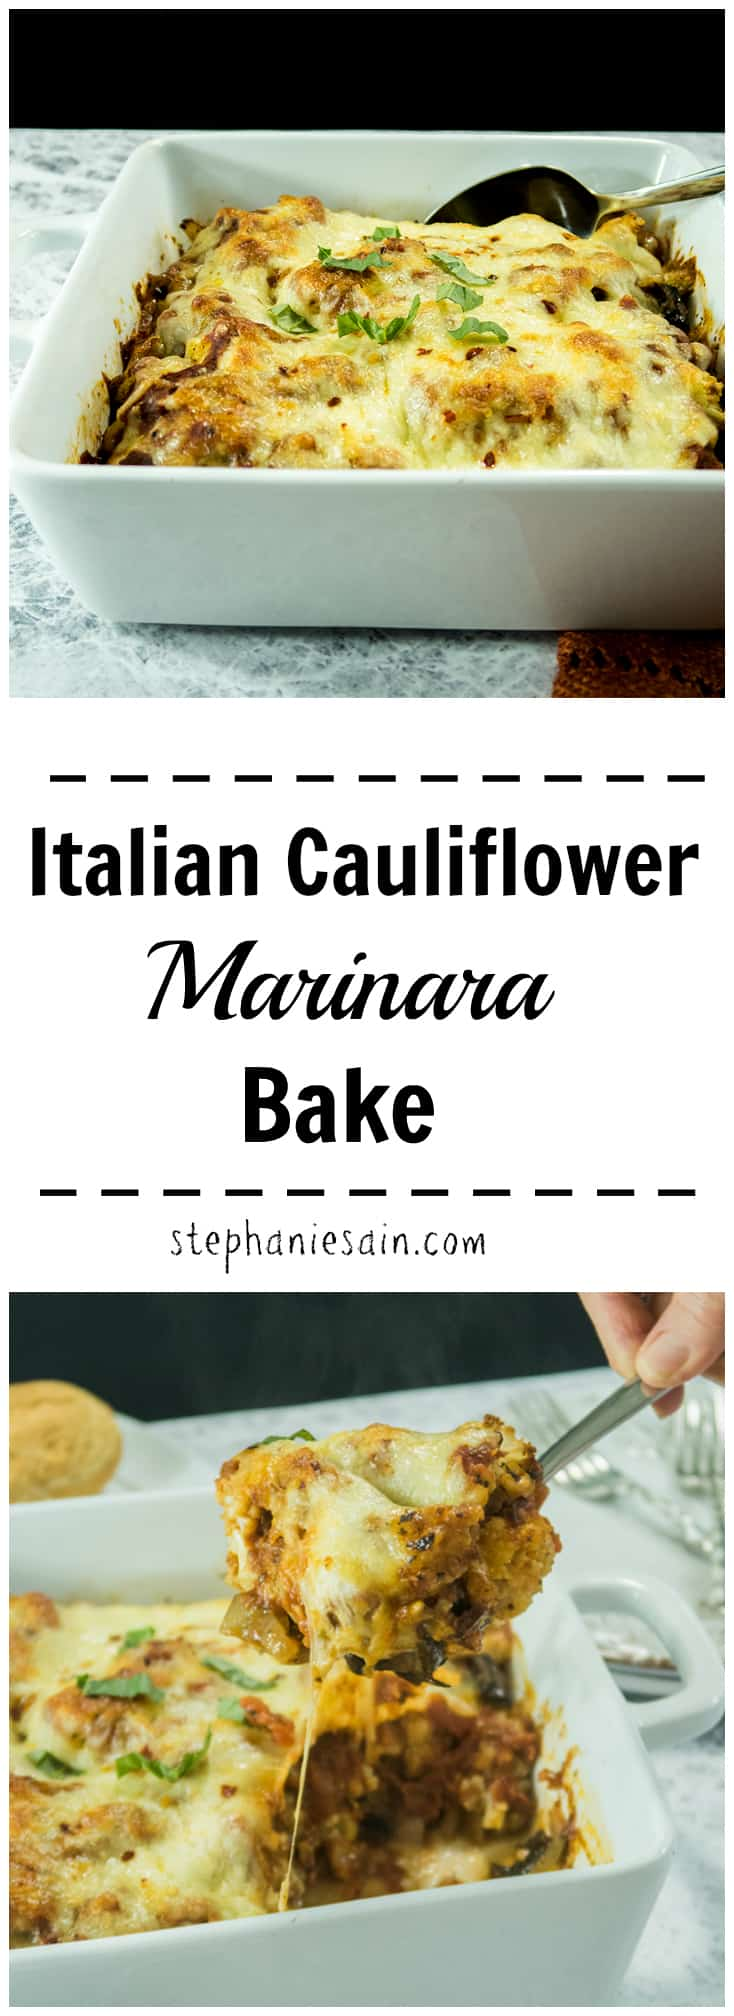 Italian Cauliflower Marinara Bake is super Easy to make and requires Only 5 ingredients. All the taste of a classic Italian meal without all the carbs. Gluten Free & Vegetarian.